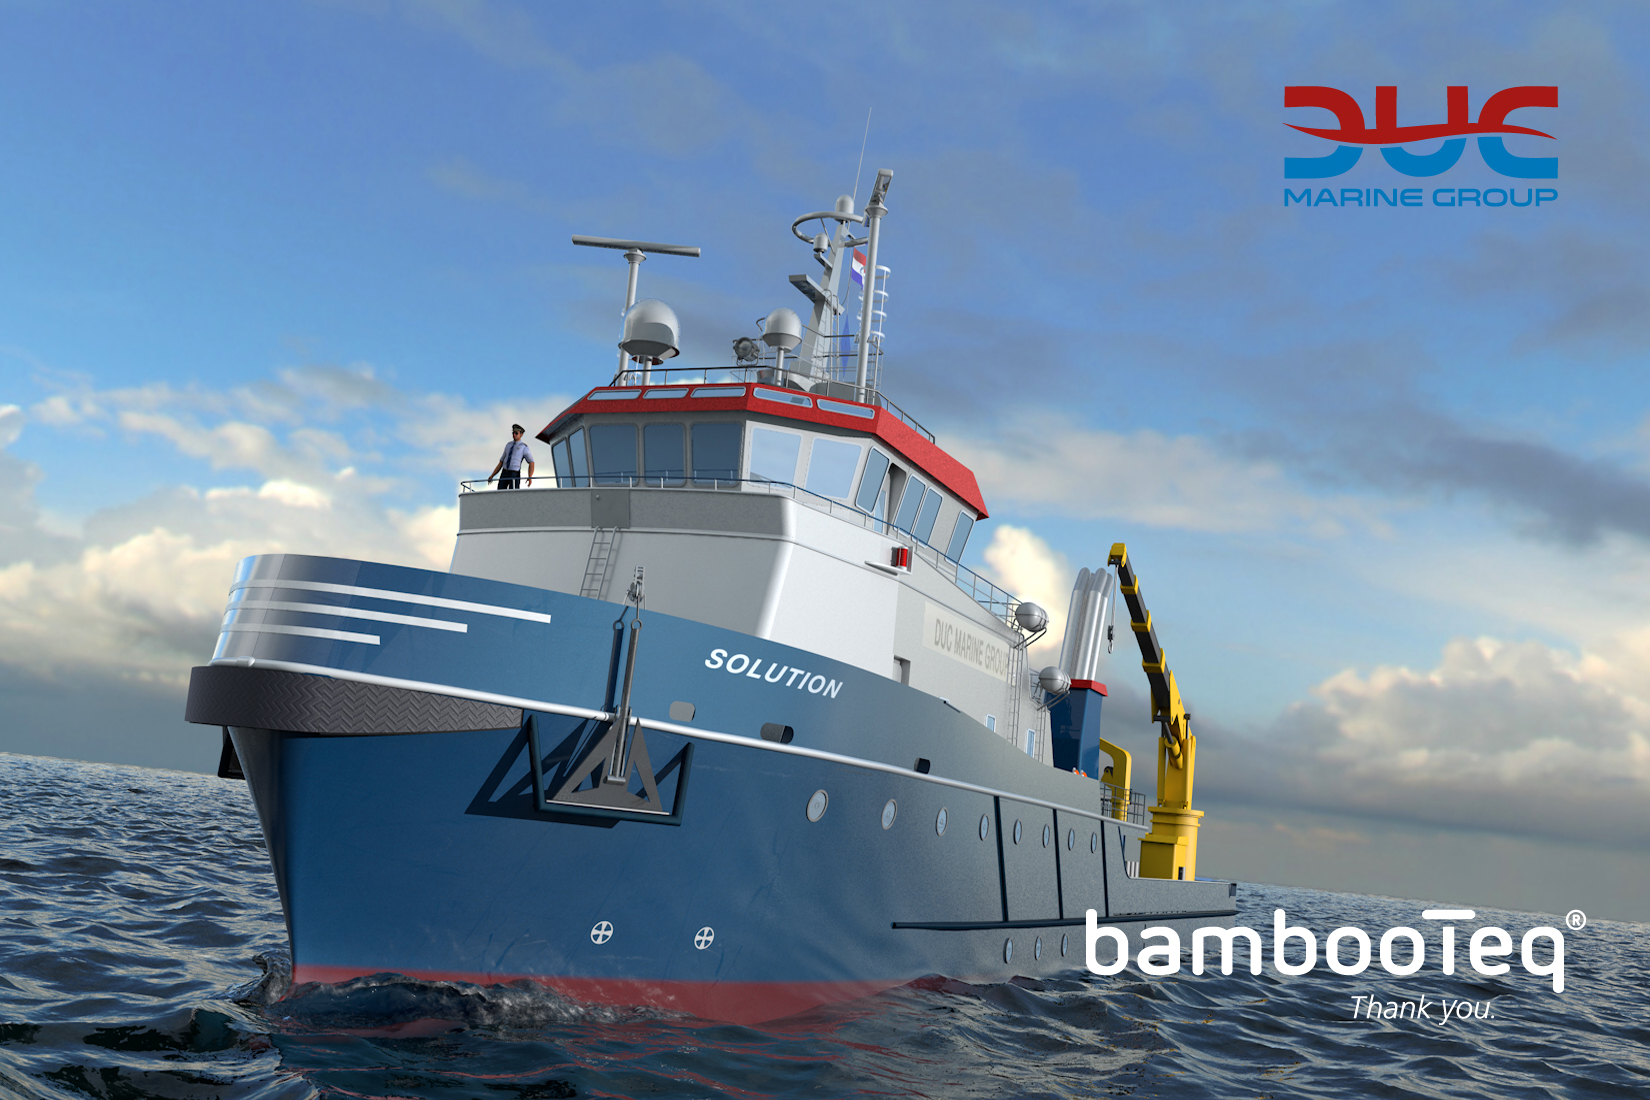 DUC Marine Group is going to apply bamboo decking by BambooTeq.